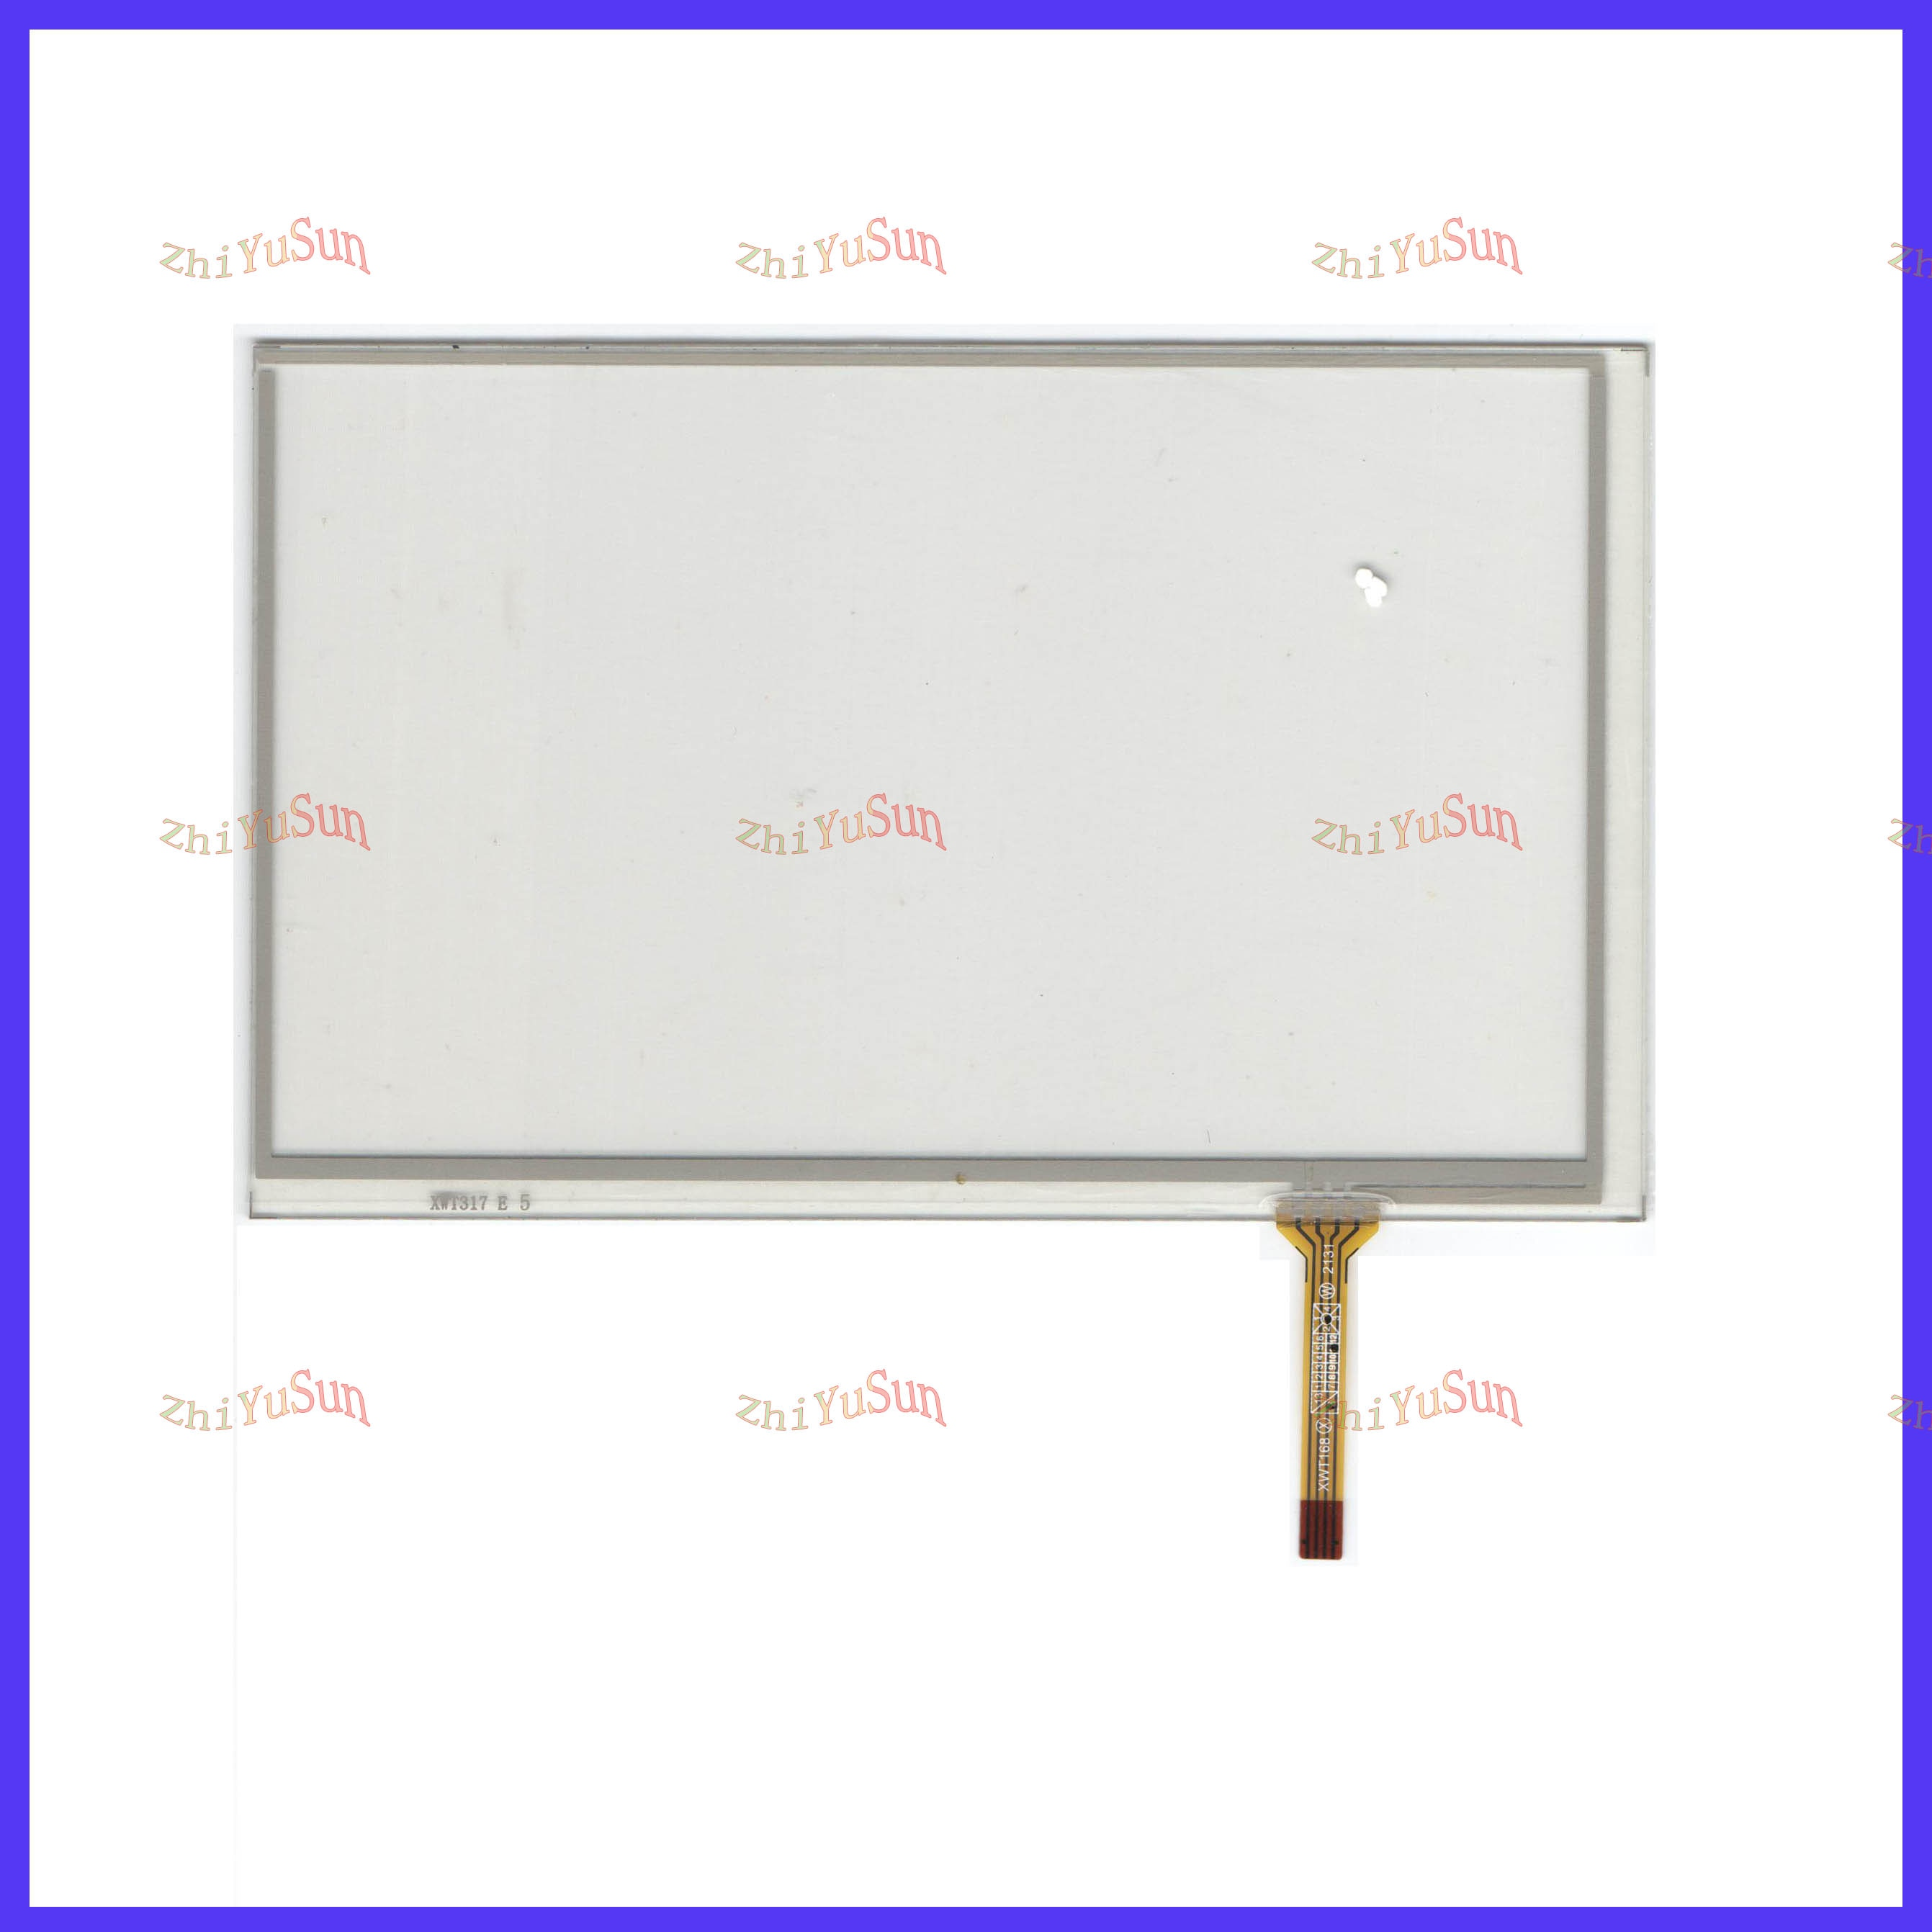 ZhiYuSun HR4 8624S03 this is compatible  7 Inch Touch Screen for 7 GPS the GLASS is for tble compati